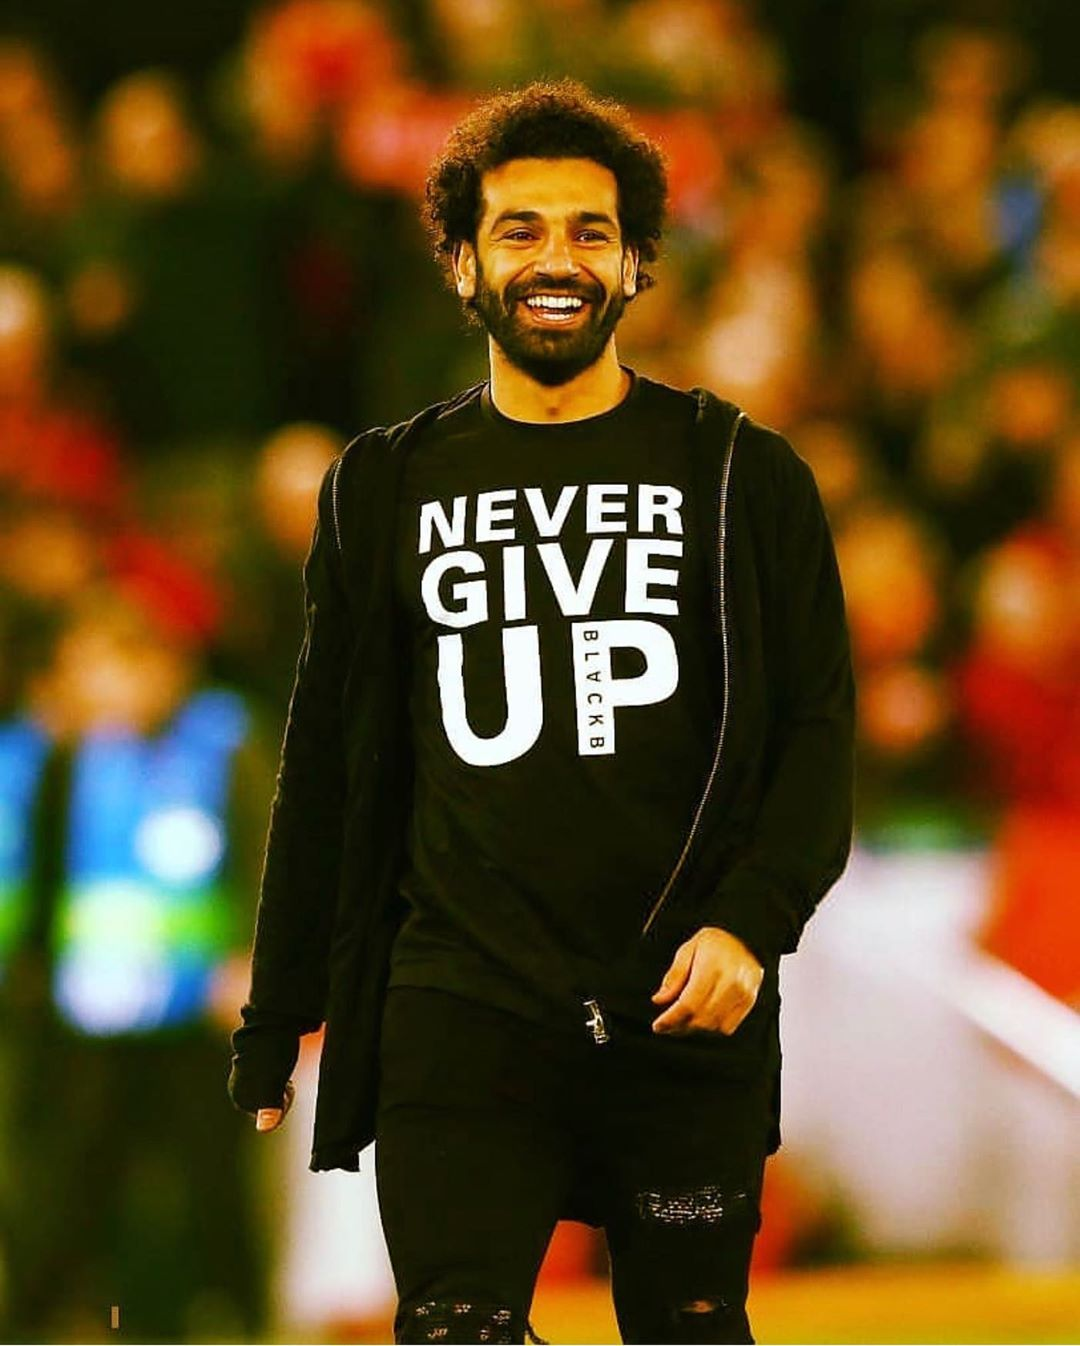 salah-v-futbolke-never-give-up